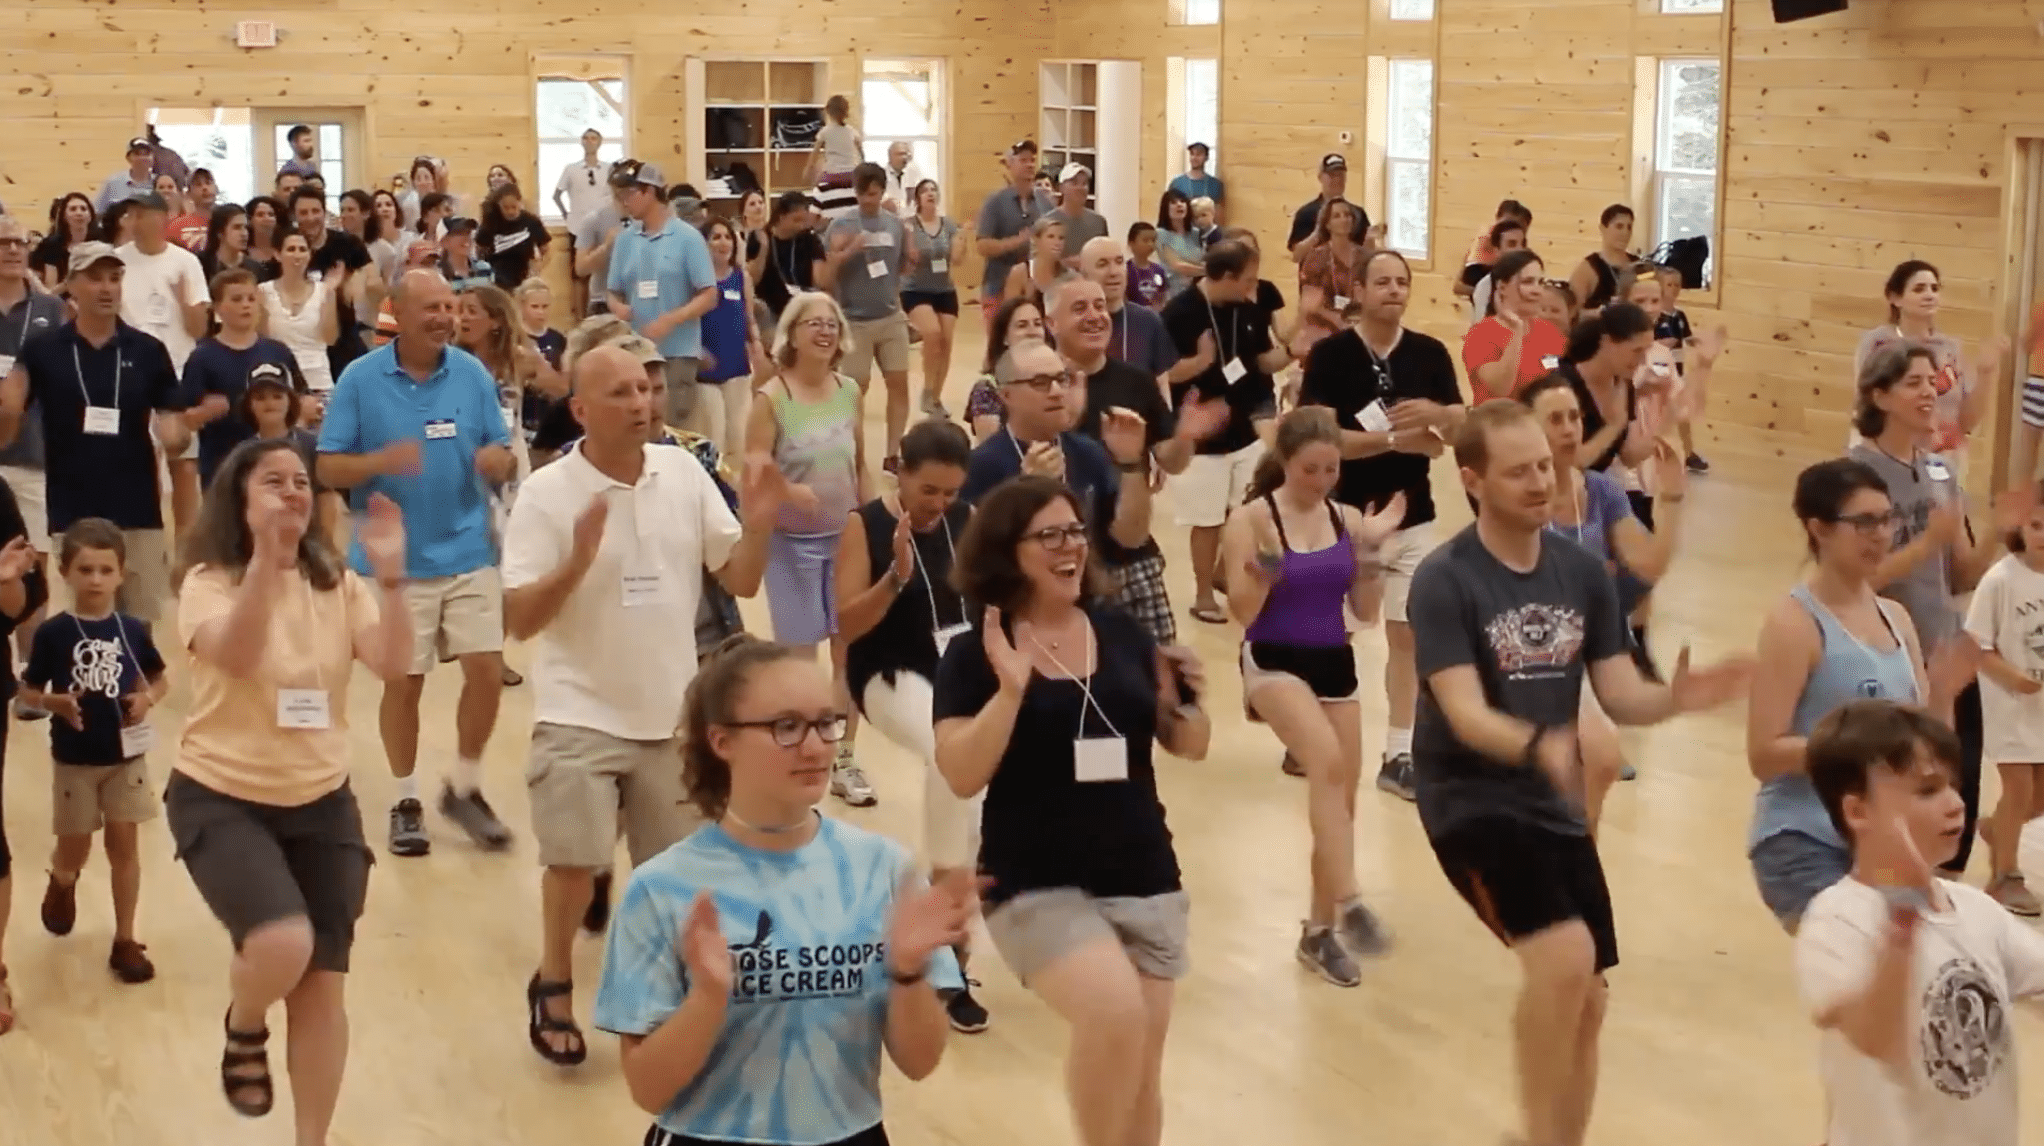 a group of counselors and campers dancing and clapping together